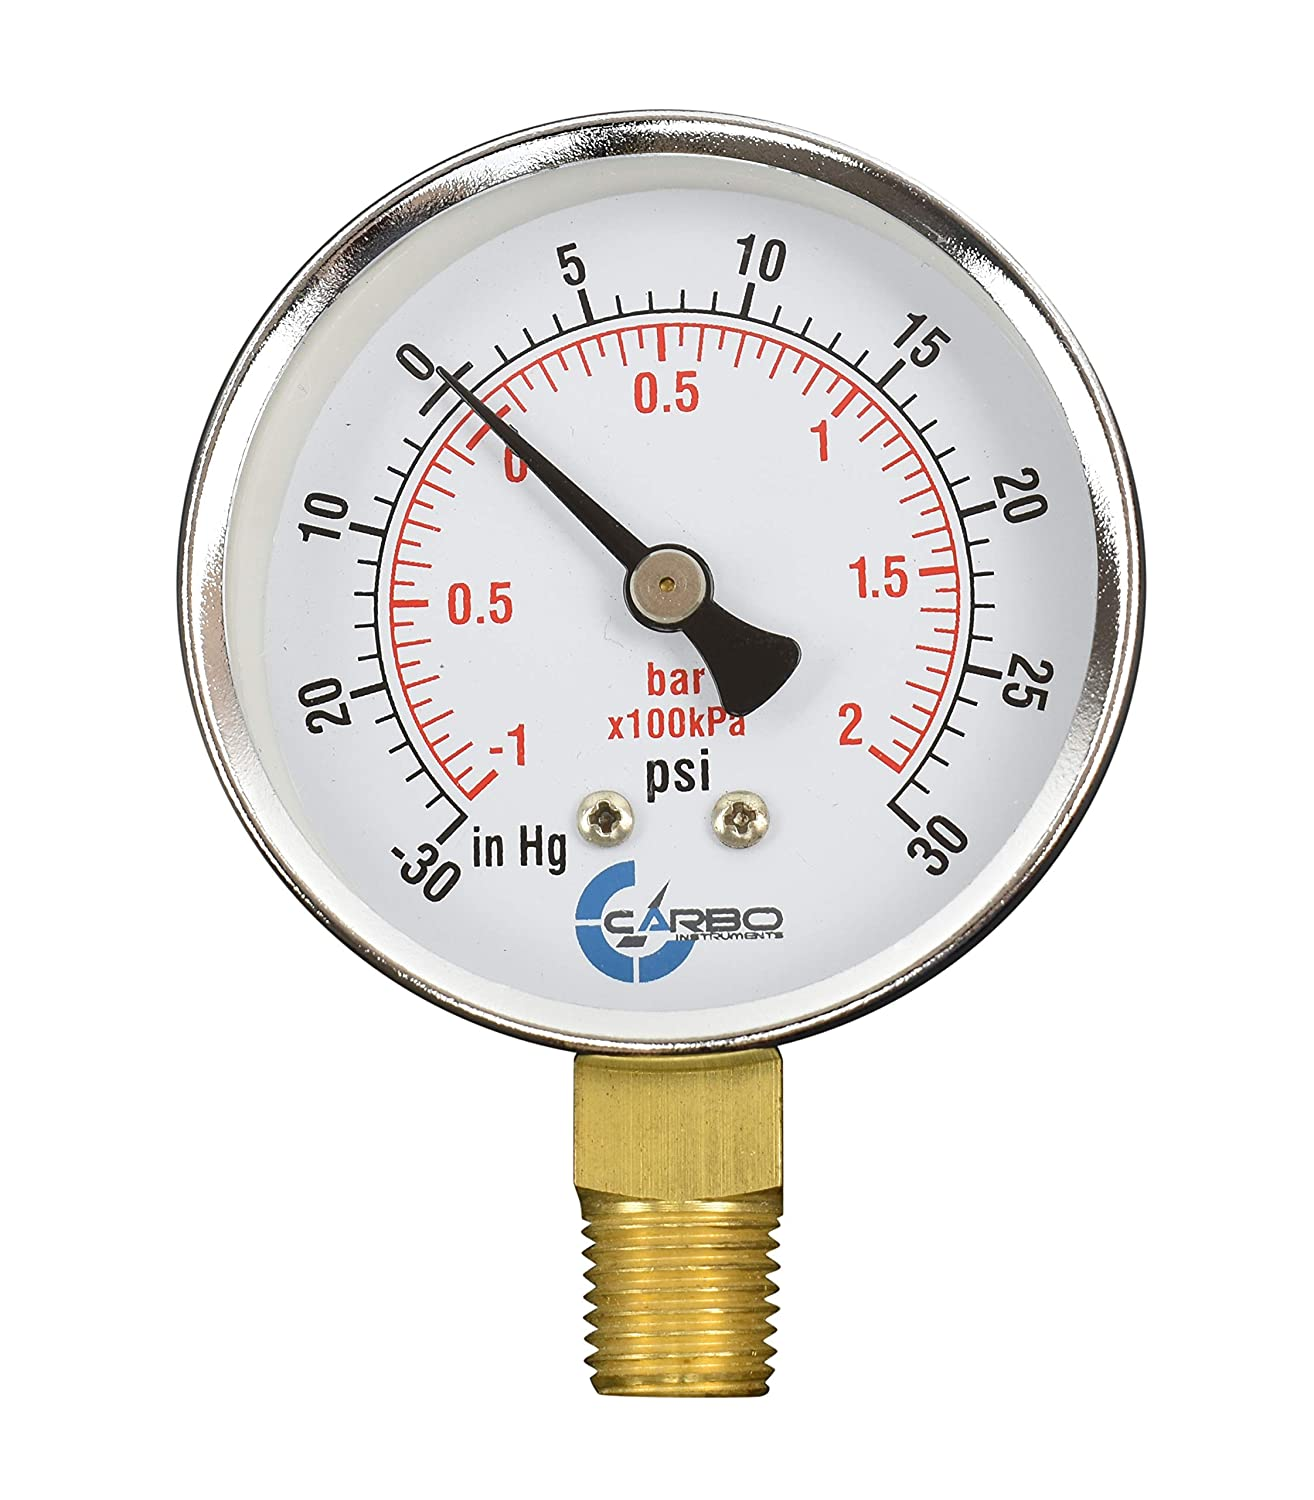 """CARBO Instruments 2-1/2"""" Pressure Gauge, Chrome Plated Steel Case, Dry, Compound Vacuum -30 Hg - 0-30 psi Lower Mount 1/4"""" NPT"""